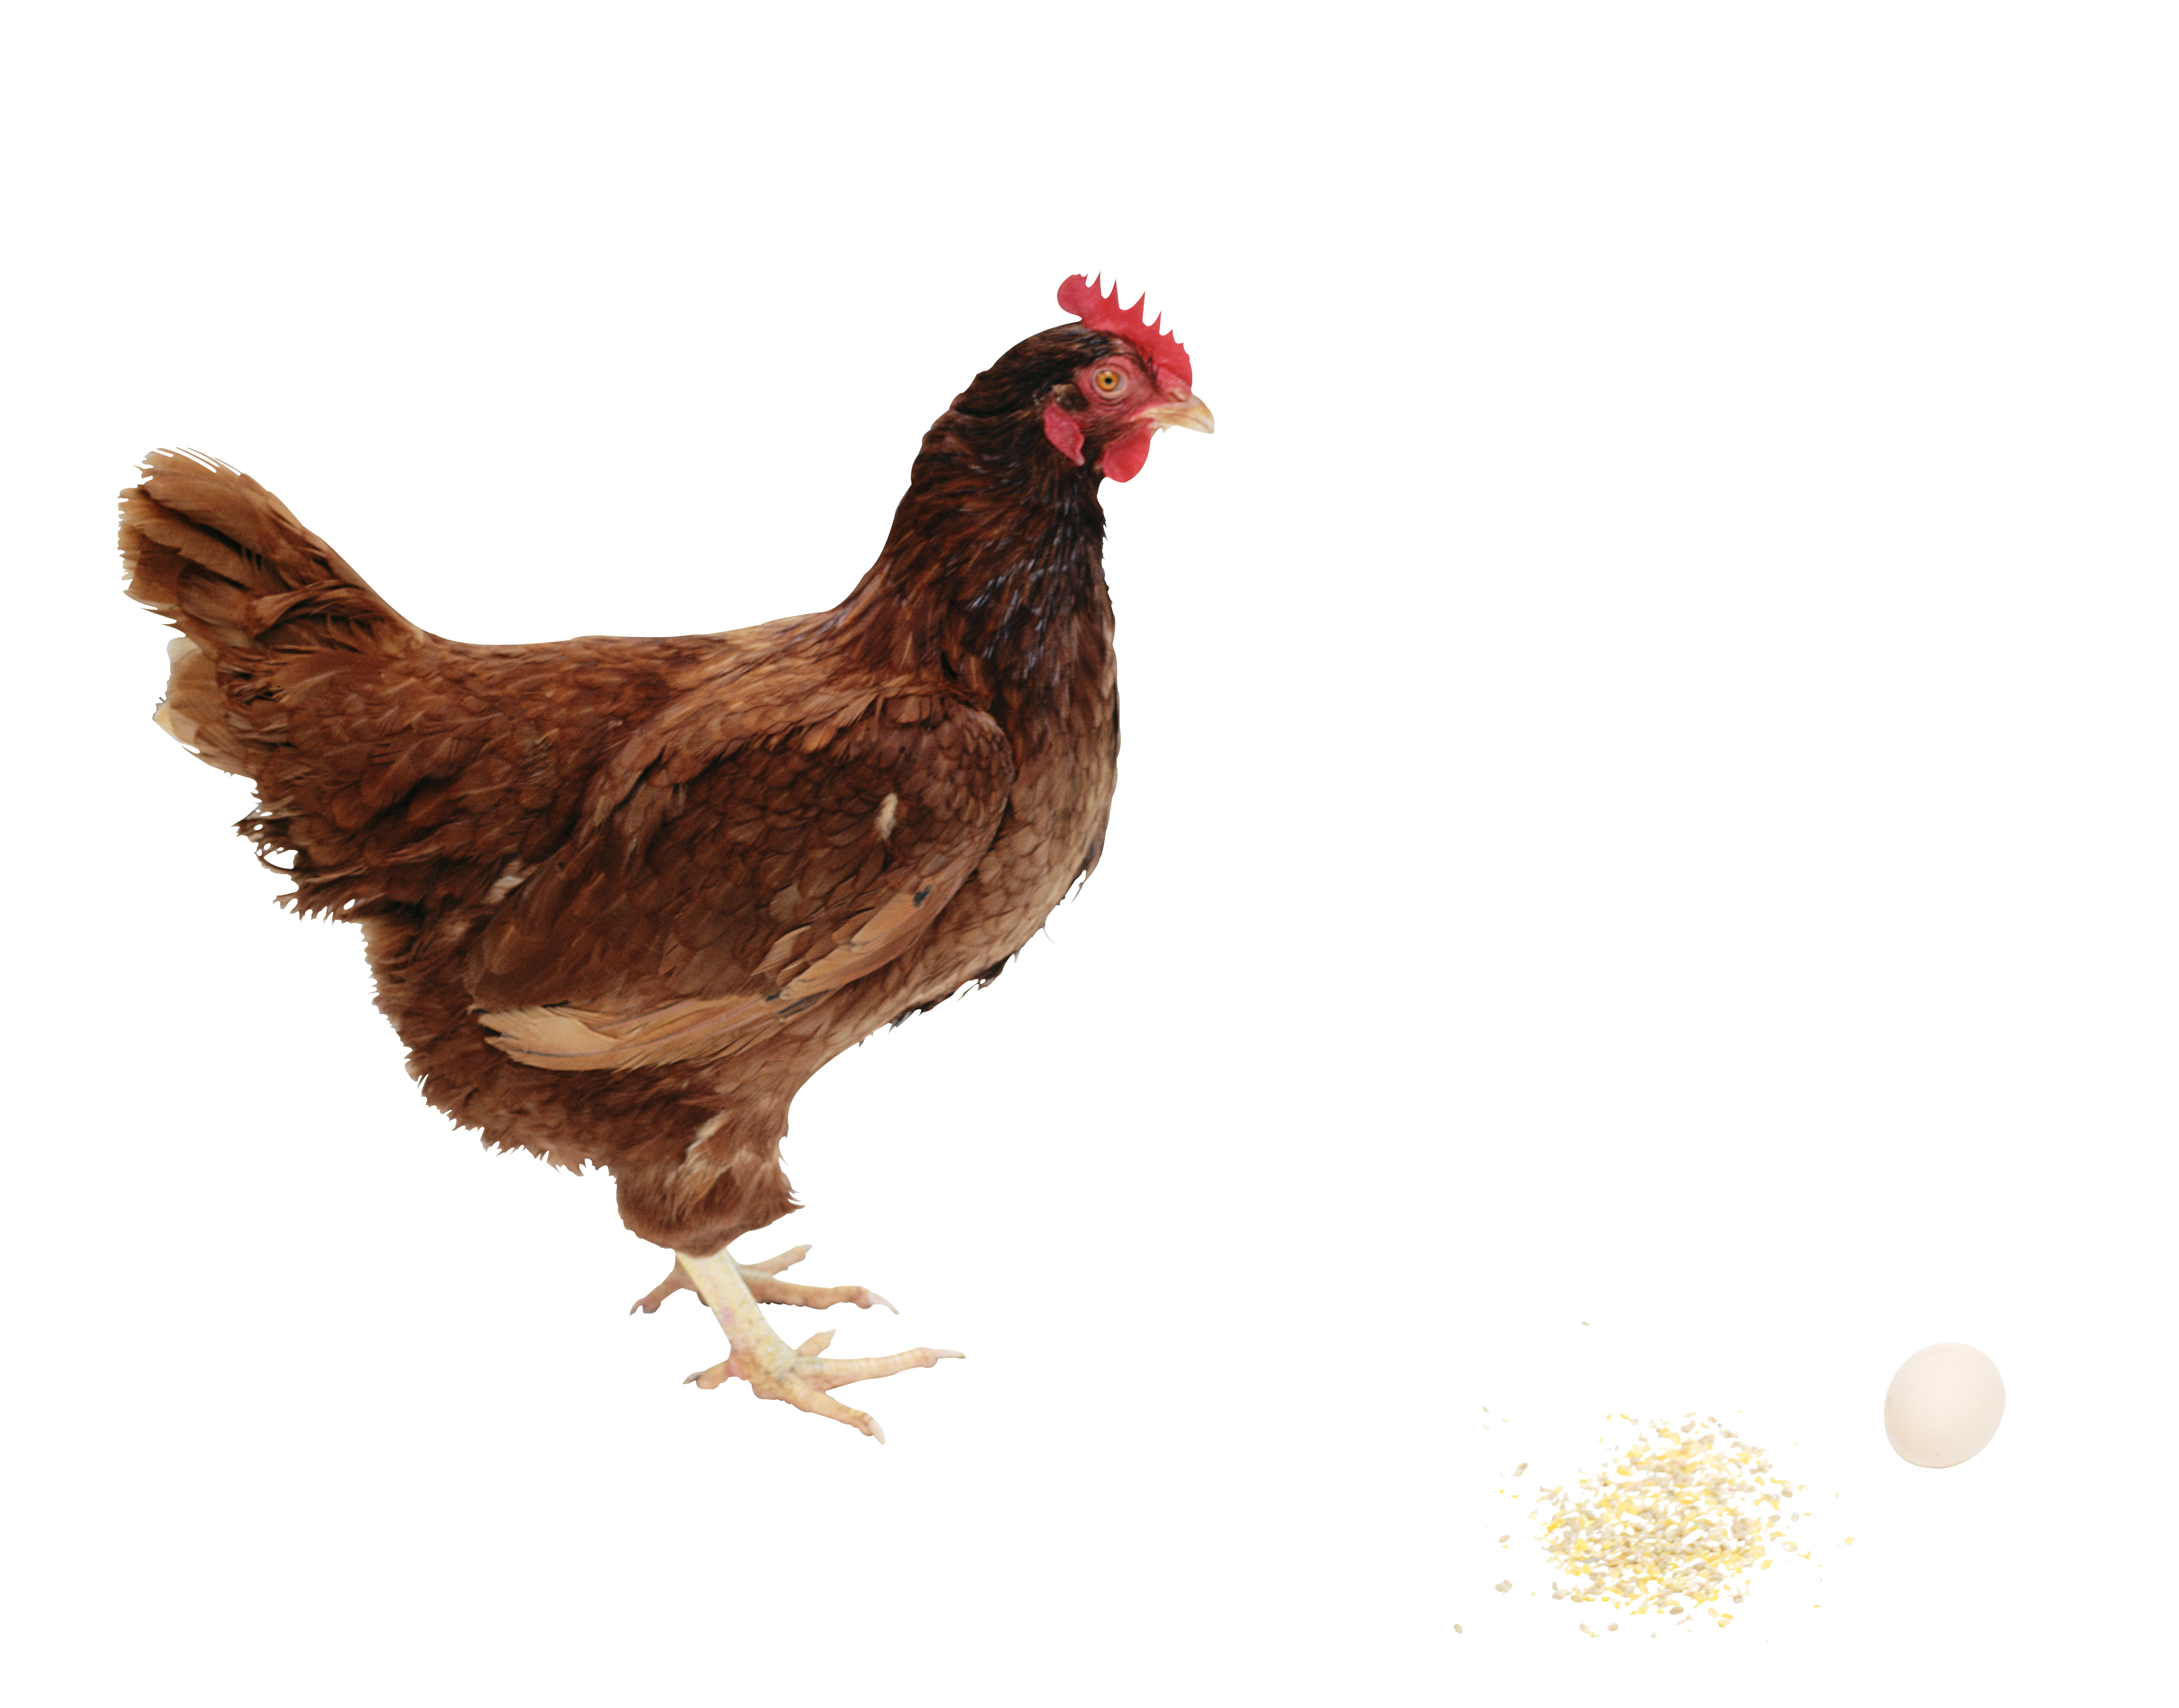 Chicken PNG image